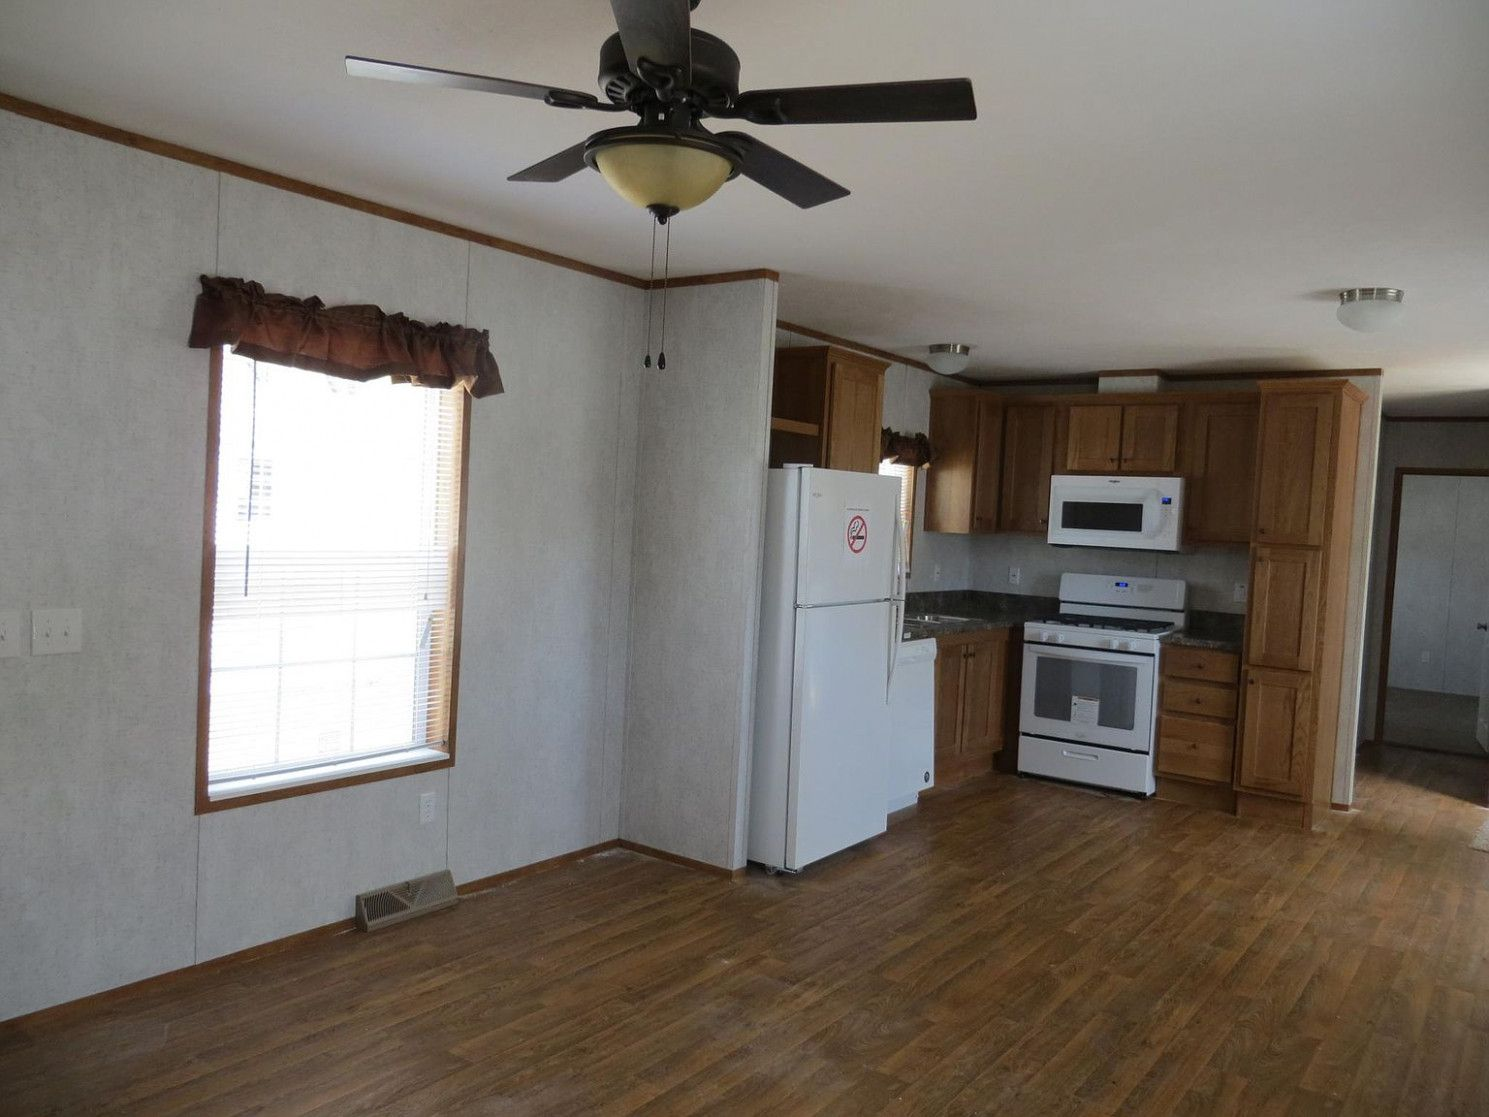 Apartments For Rent In Egg Harbor Township Nj In 2020 Renting A House Apartments For Rent Apartment